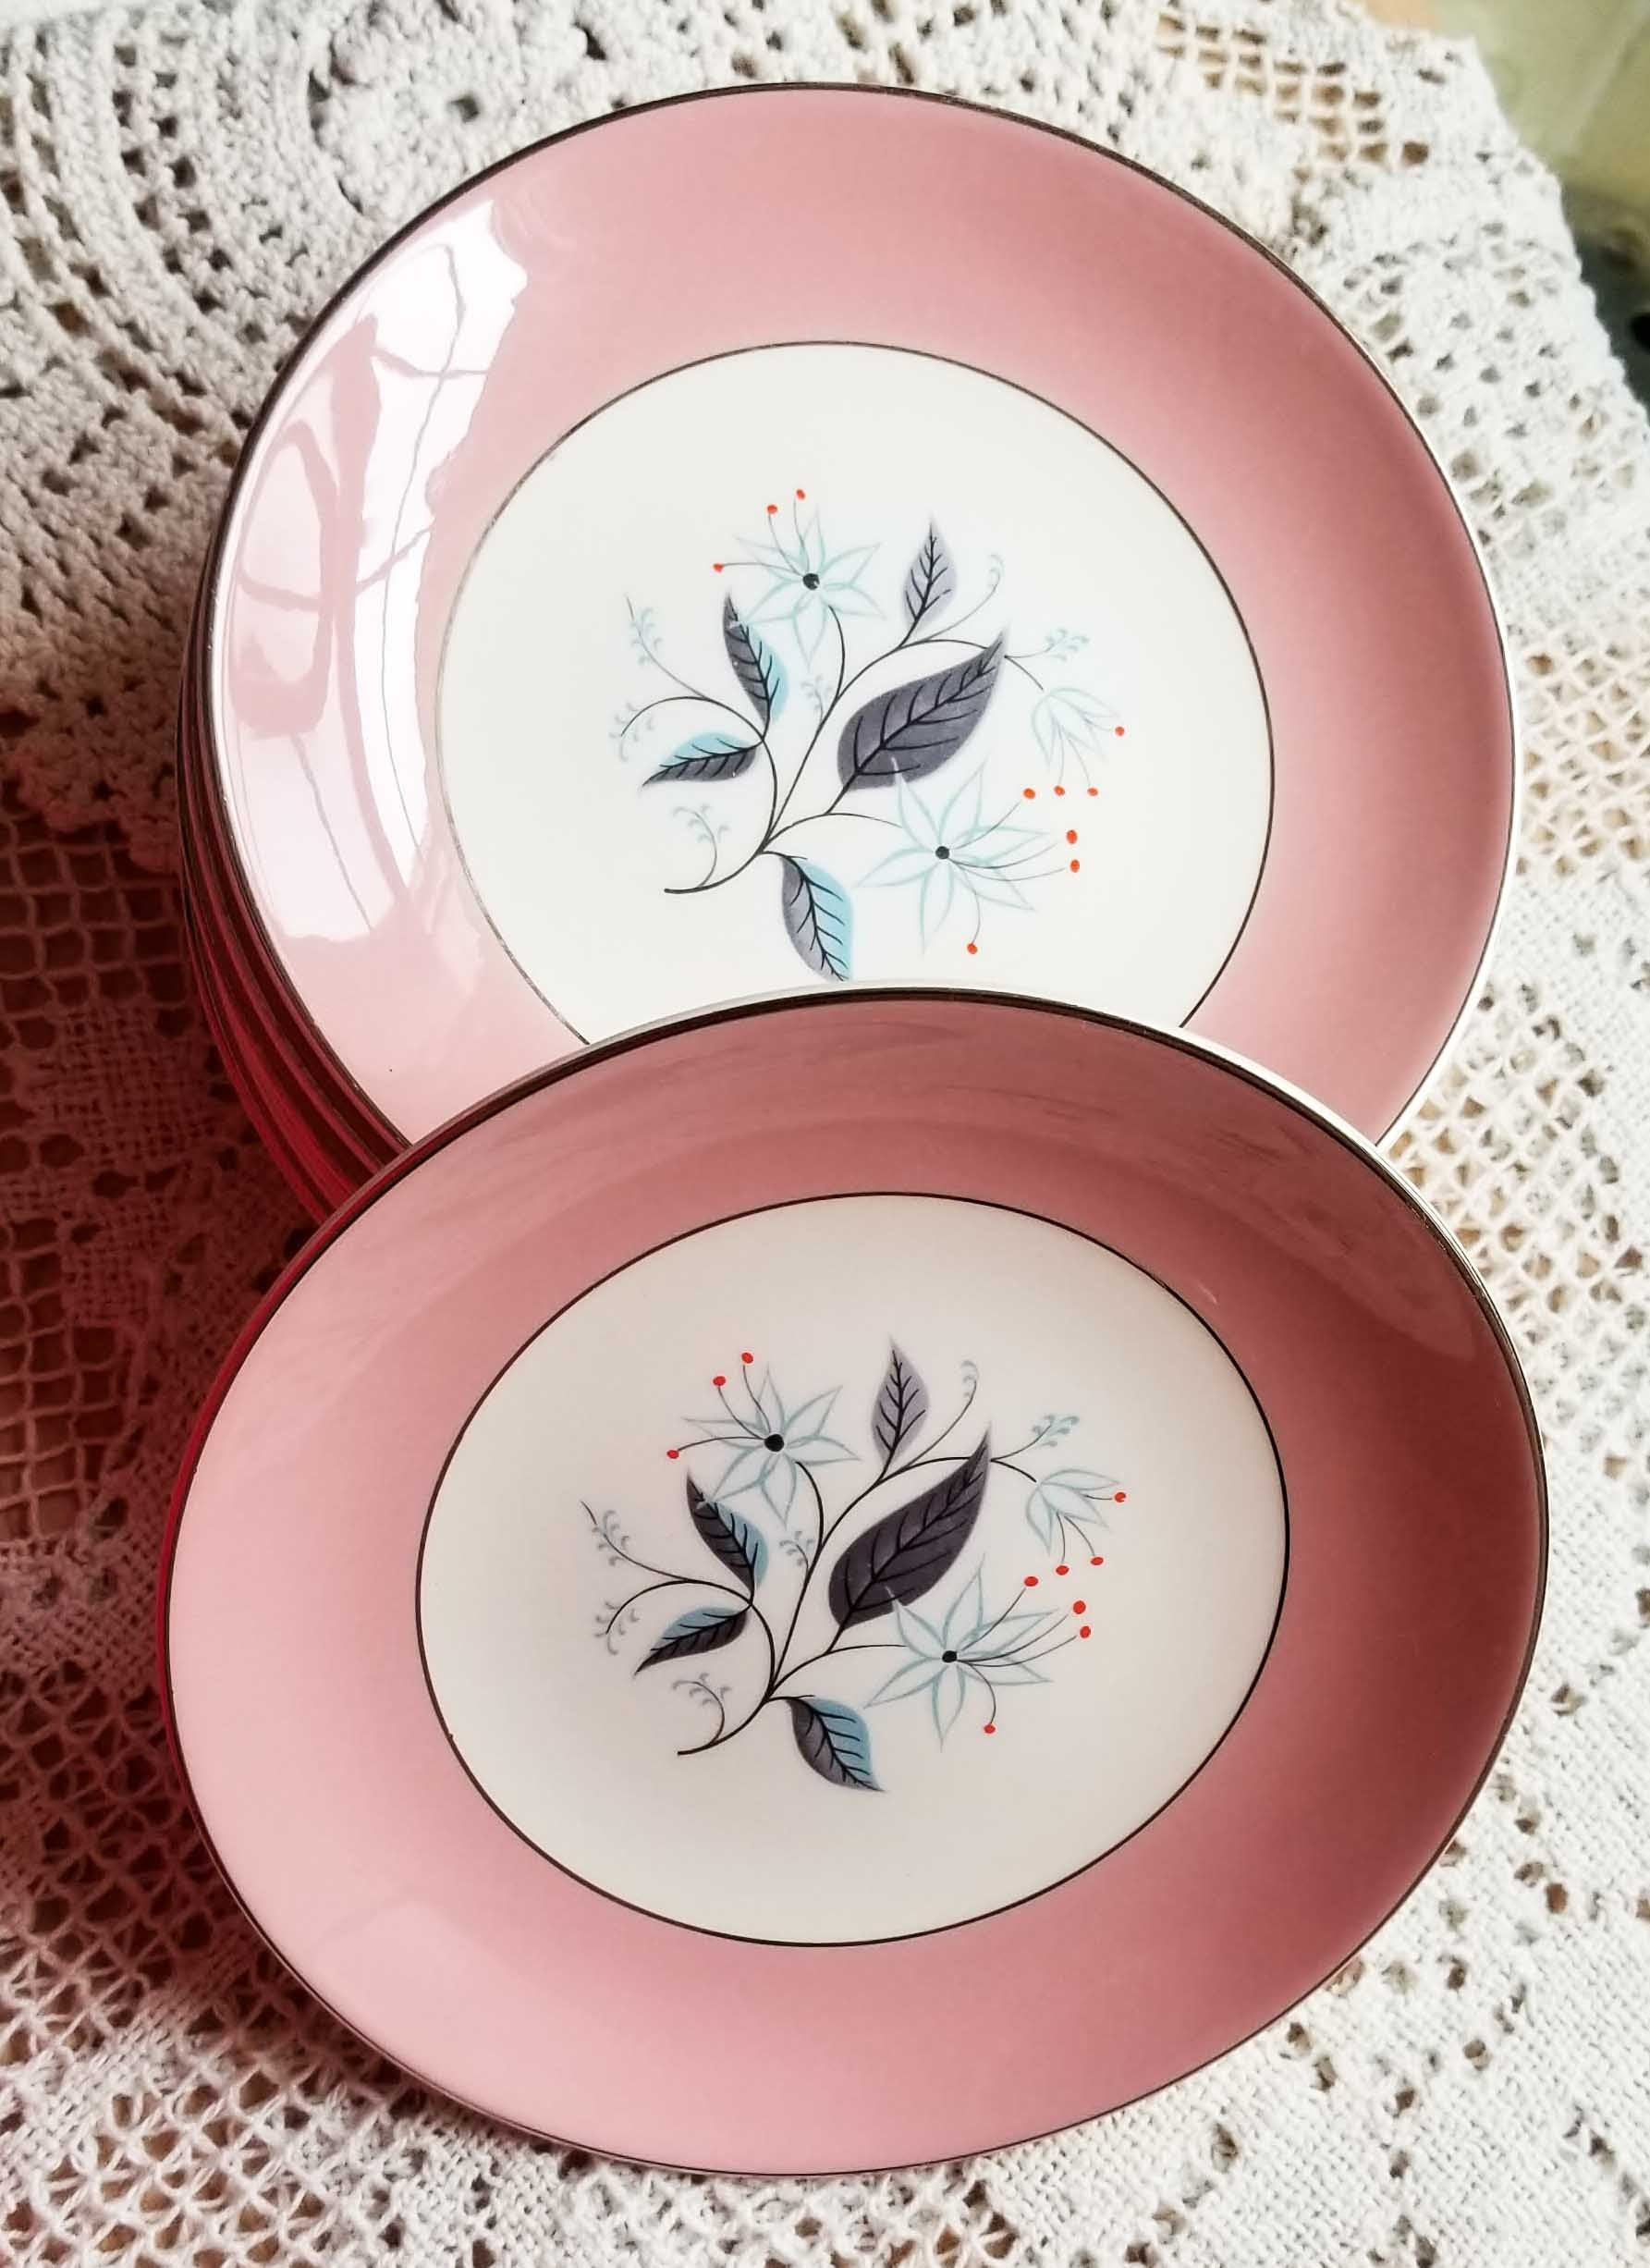 TEN Pieces Vintage Mid Century Pink Edge with Gray and Blue Foliage Bread & Butter and Dinner Plate Platter HLS301 by HOMER LAUGHLIN